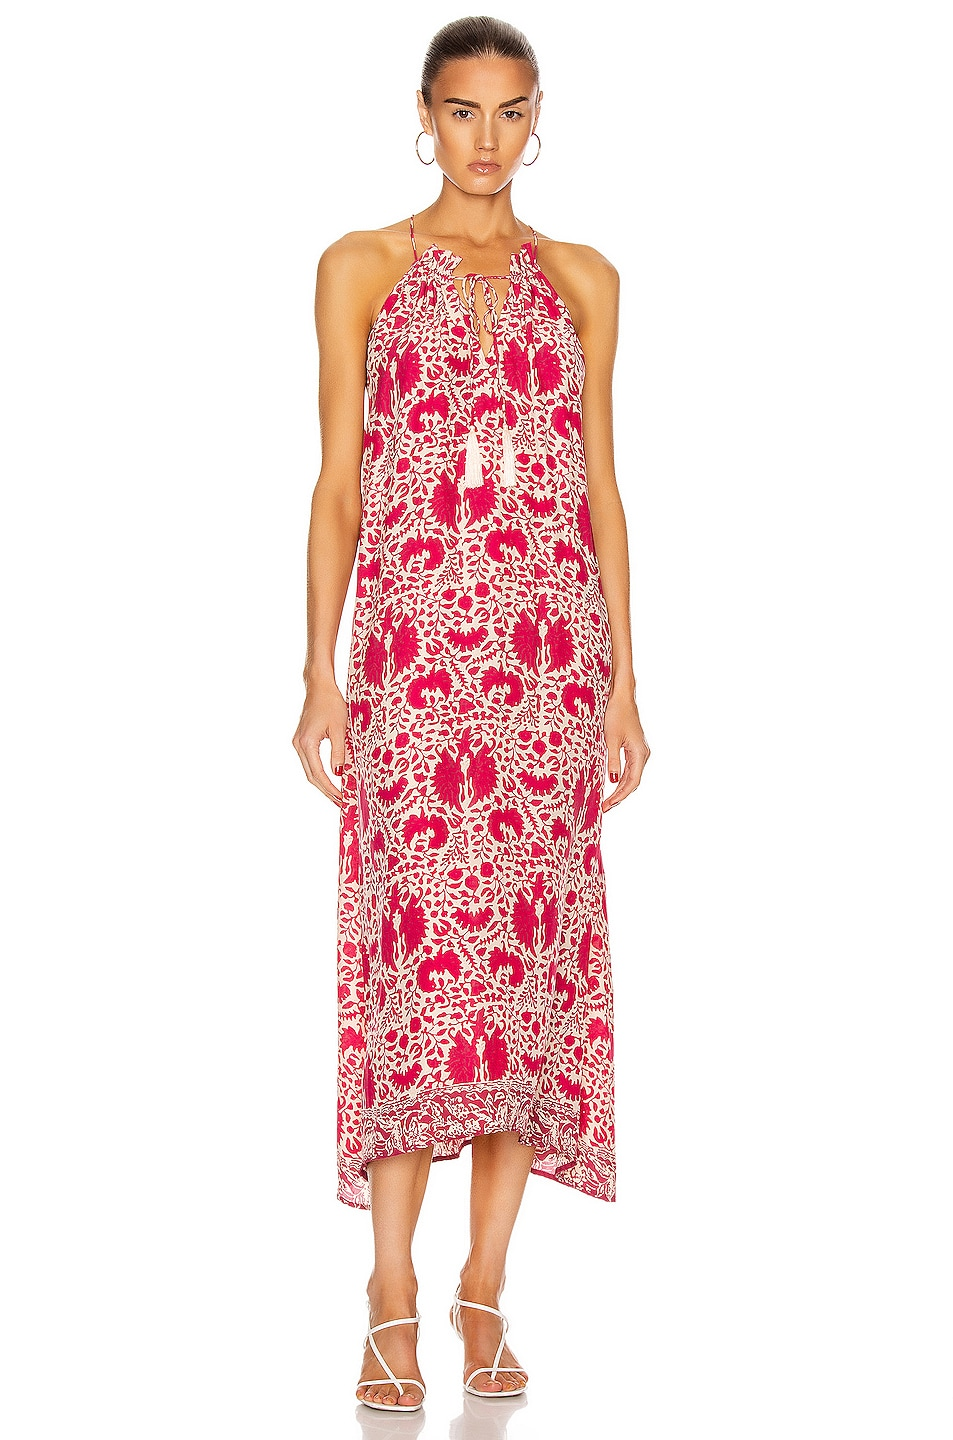 Image 1 of Natalie Martin Marlien Maxi Dress in Wing Print Bougainvillea Pink